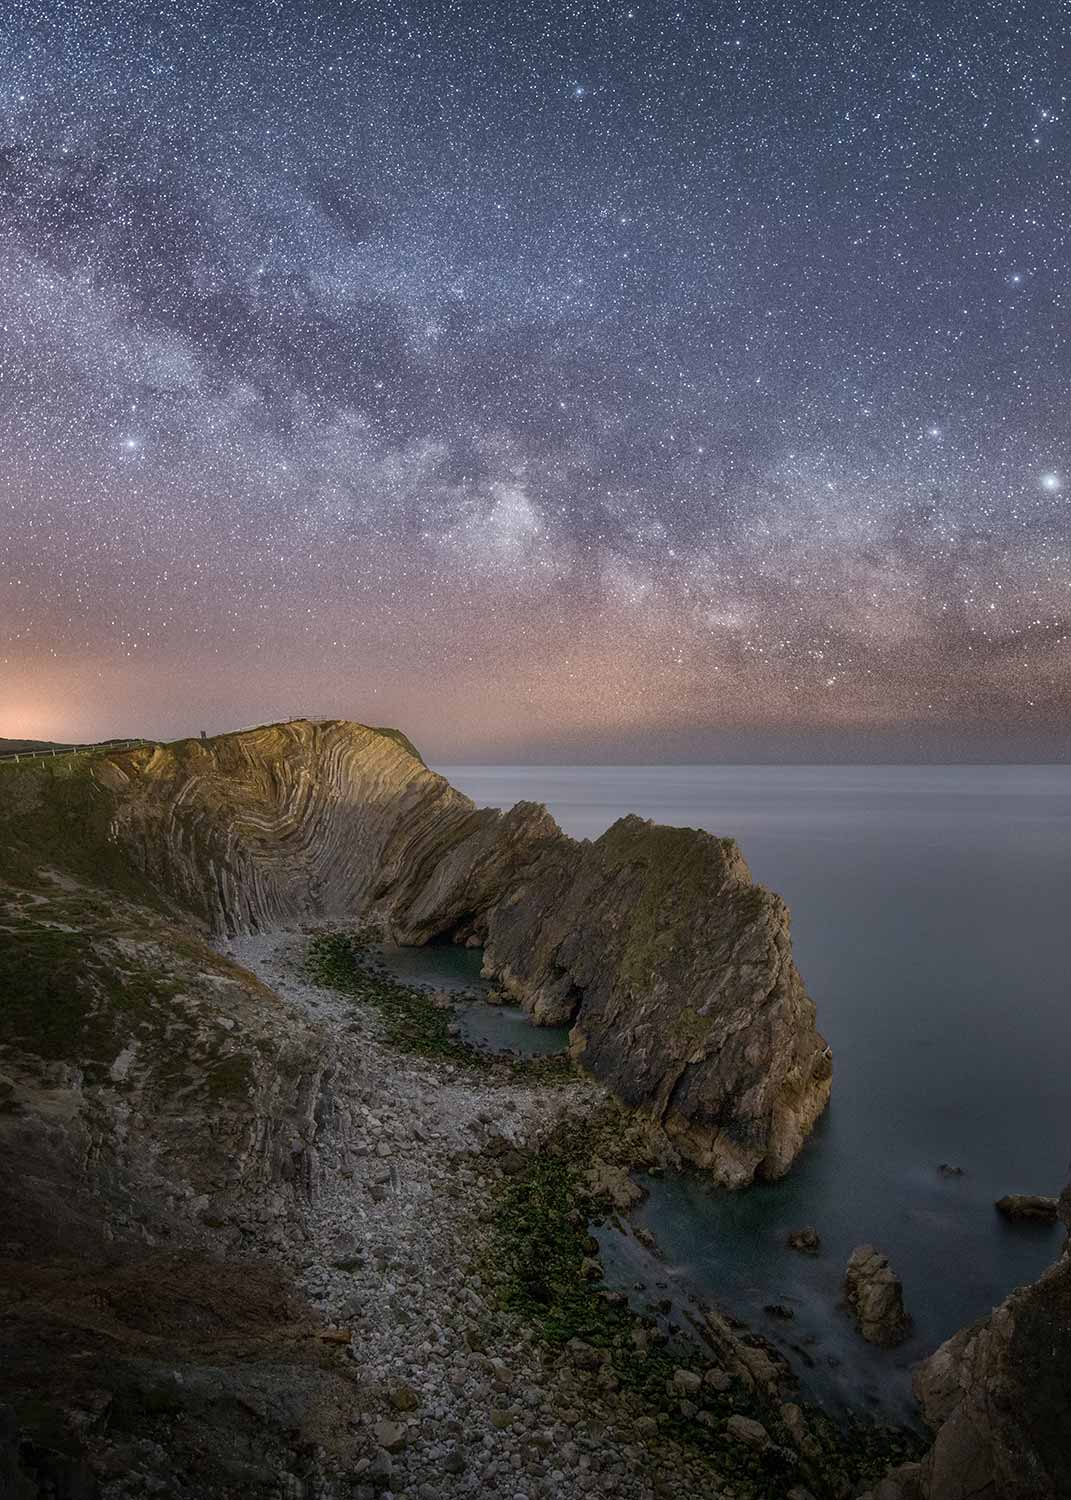 Milky Way Above Stair Hole